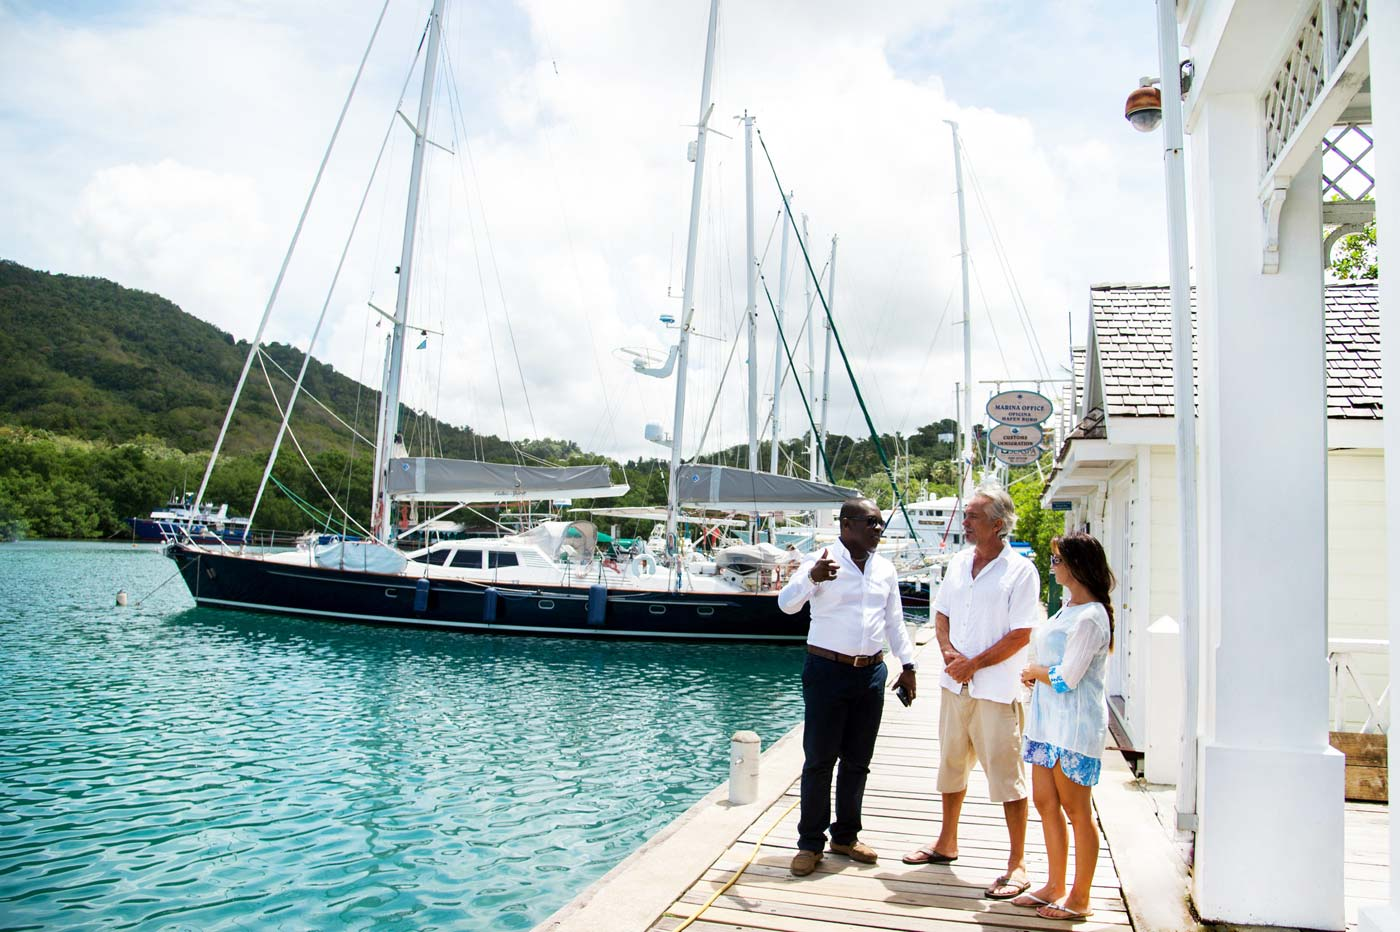 A Luxurious Experience at the Marigot Bay Marina and Resort by Capella 8